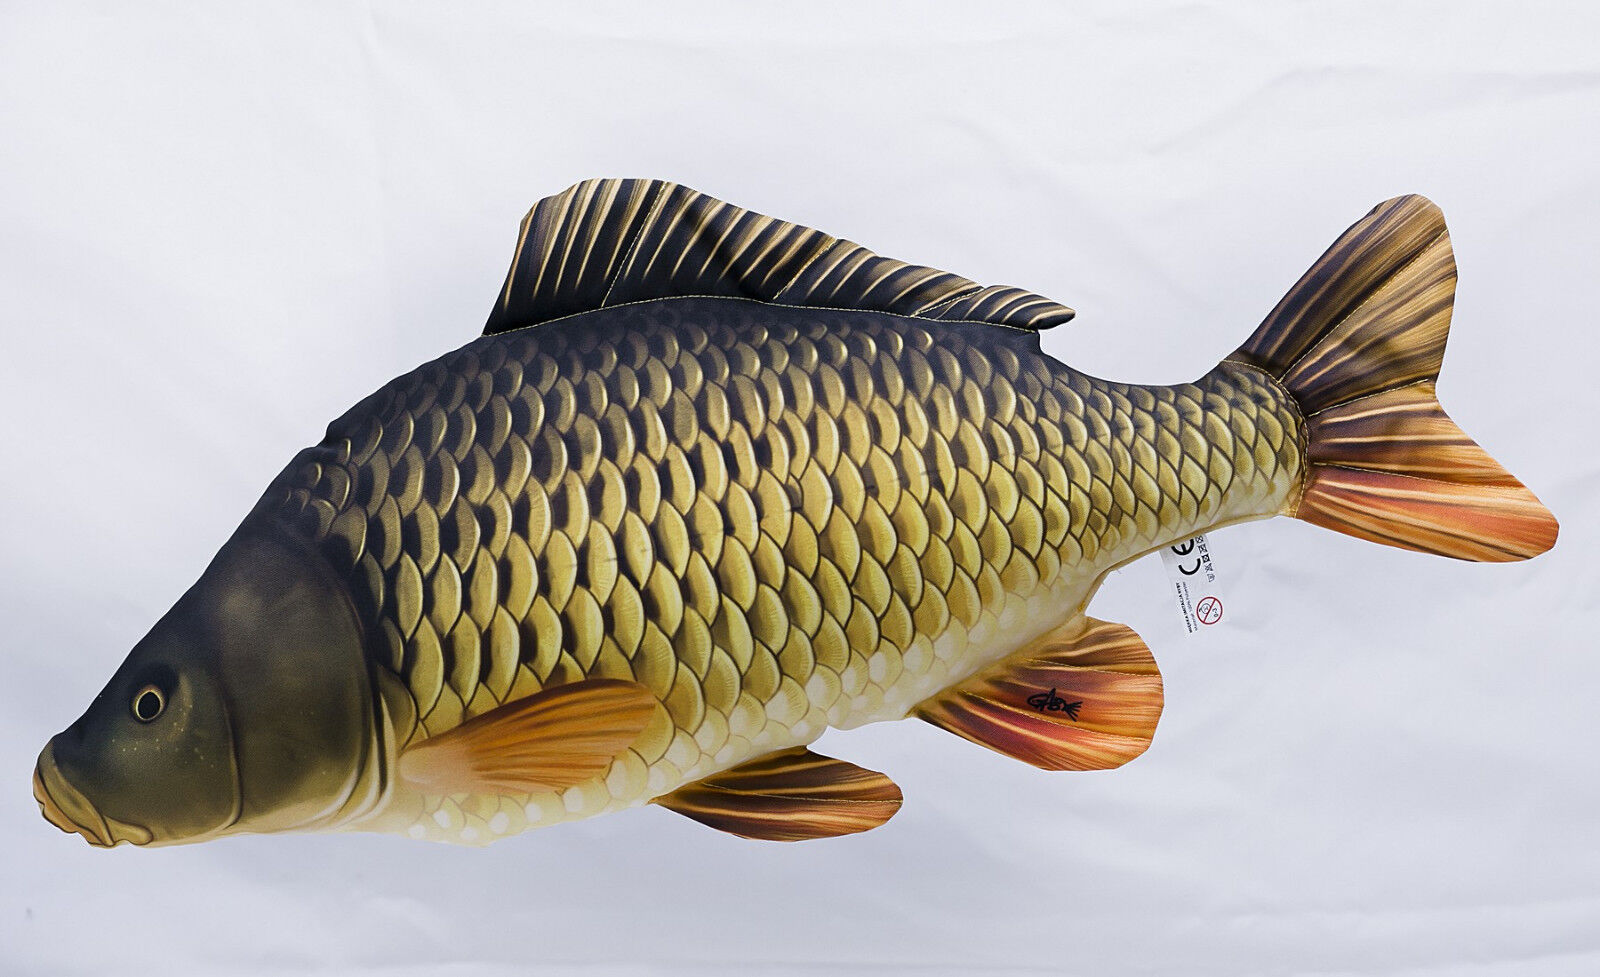 GABY GIANT COMMON CARP SOFT TOY FISH PILLOW GIFT 100CM  39INCH. FREE POSTAGE   offering store